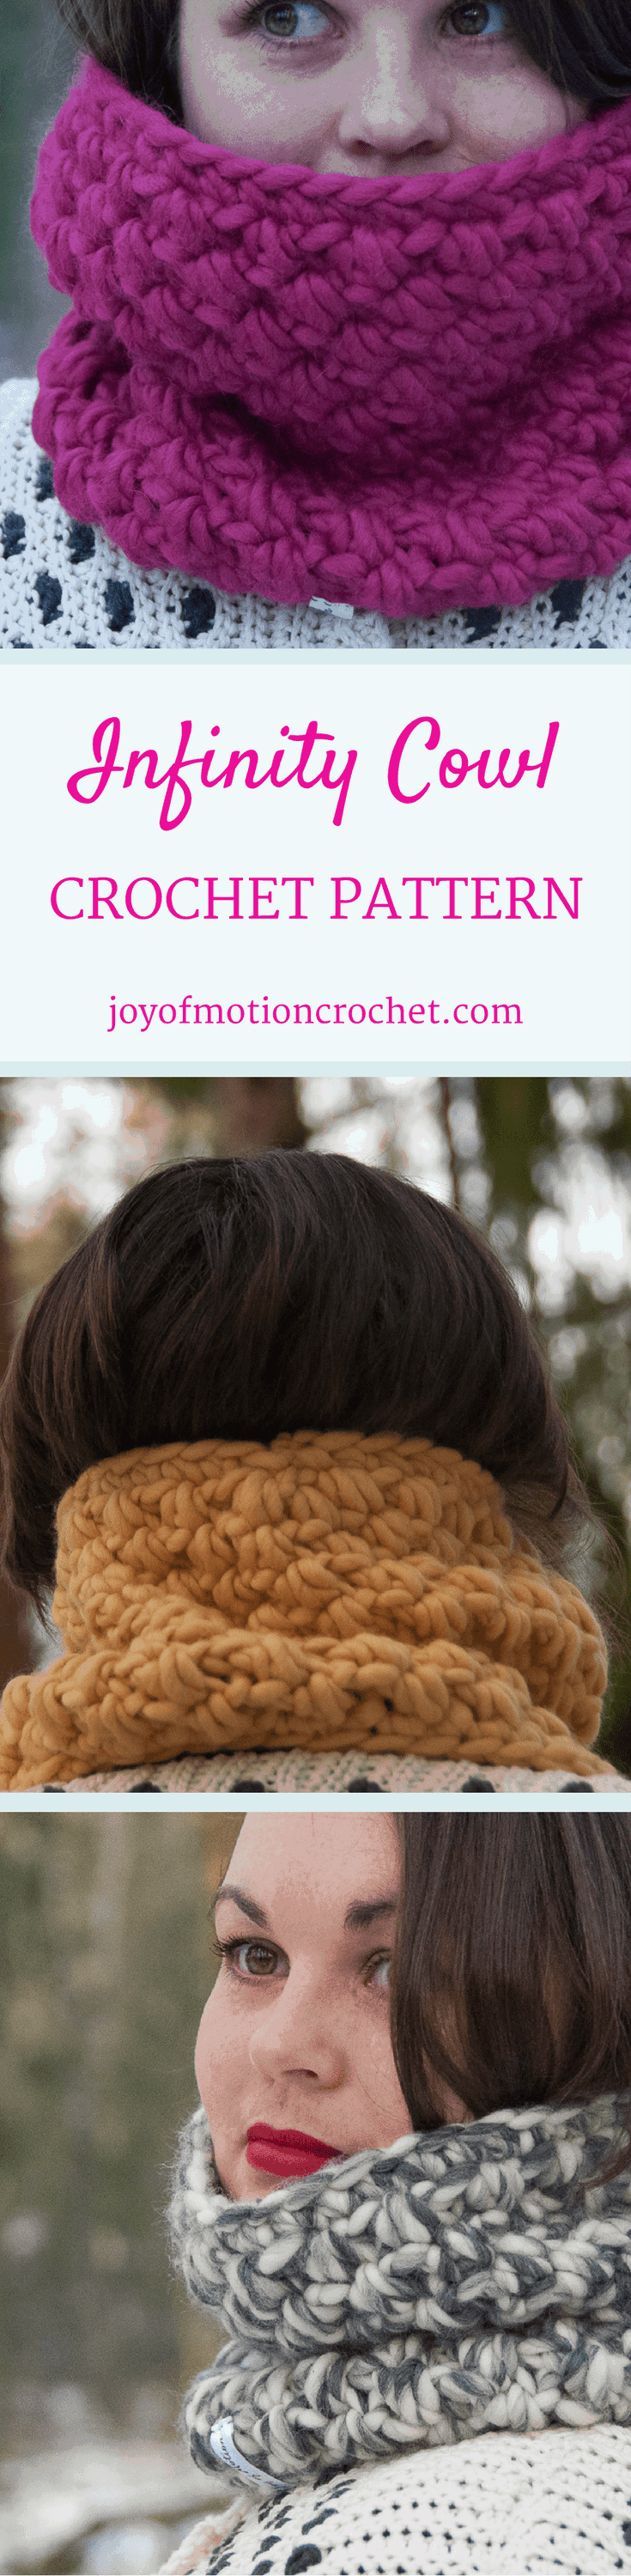 The Infinity Cowl. Crochet pattern for a warm winter cowl. This cowl crochet pattern is one-size, but can be customized. Cowl crochet patterns. Crochet pattern cowls. Winter crochet patterns. Click link to learn more.